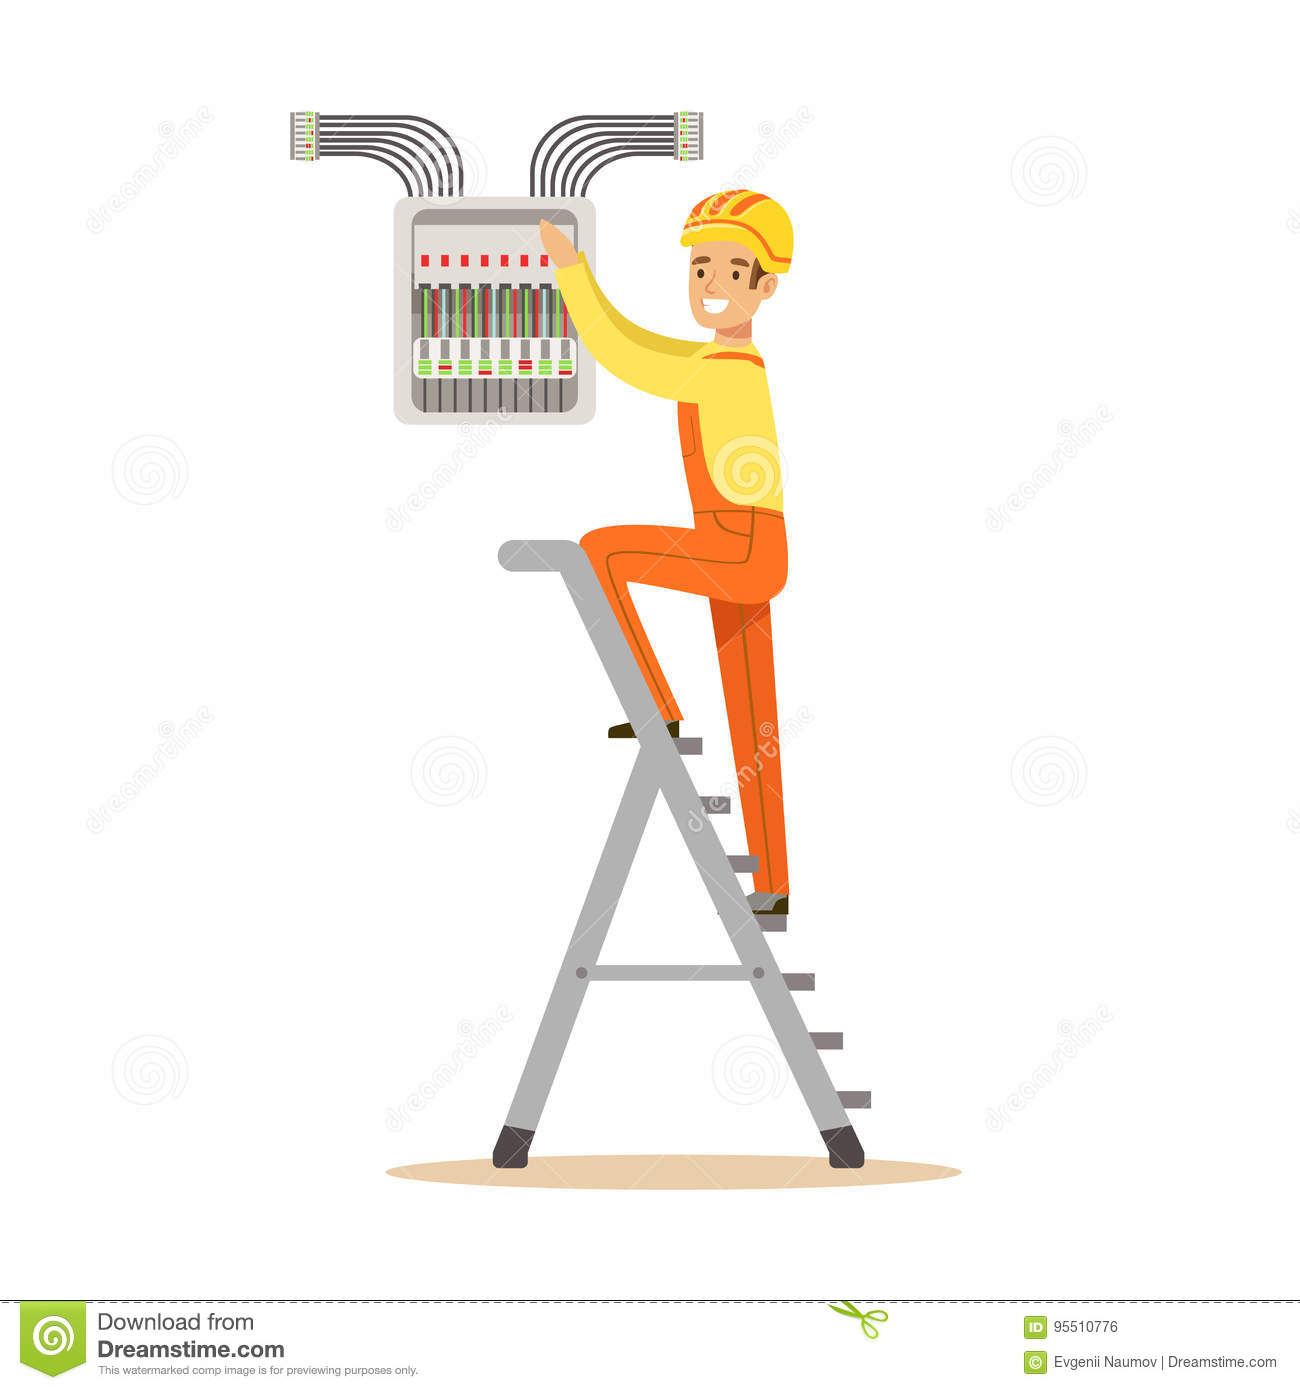 Electrician standing on a stepladder and screwing equipment in fuse box,  electric man performing electrical